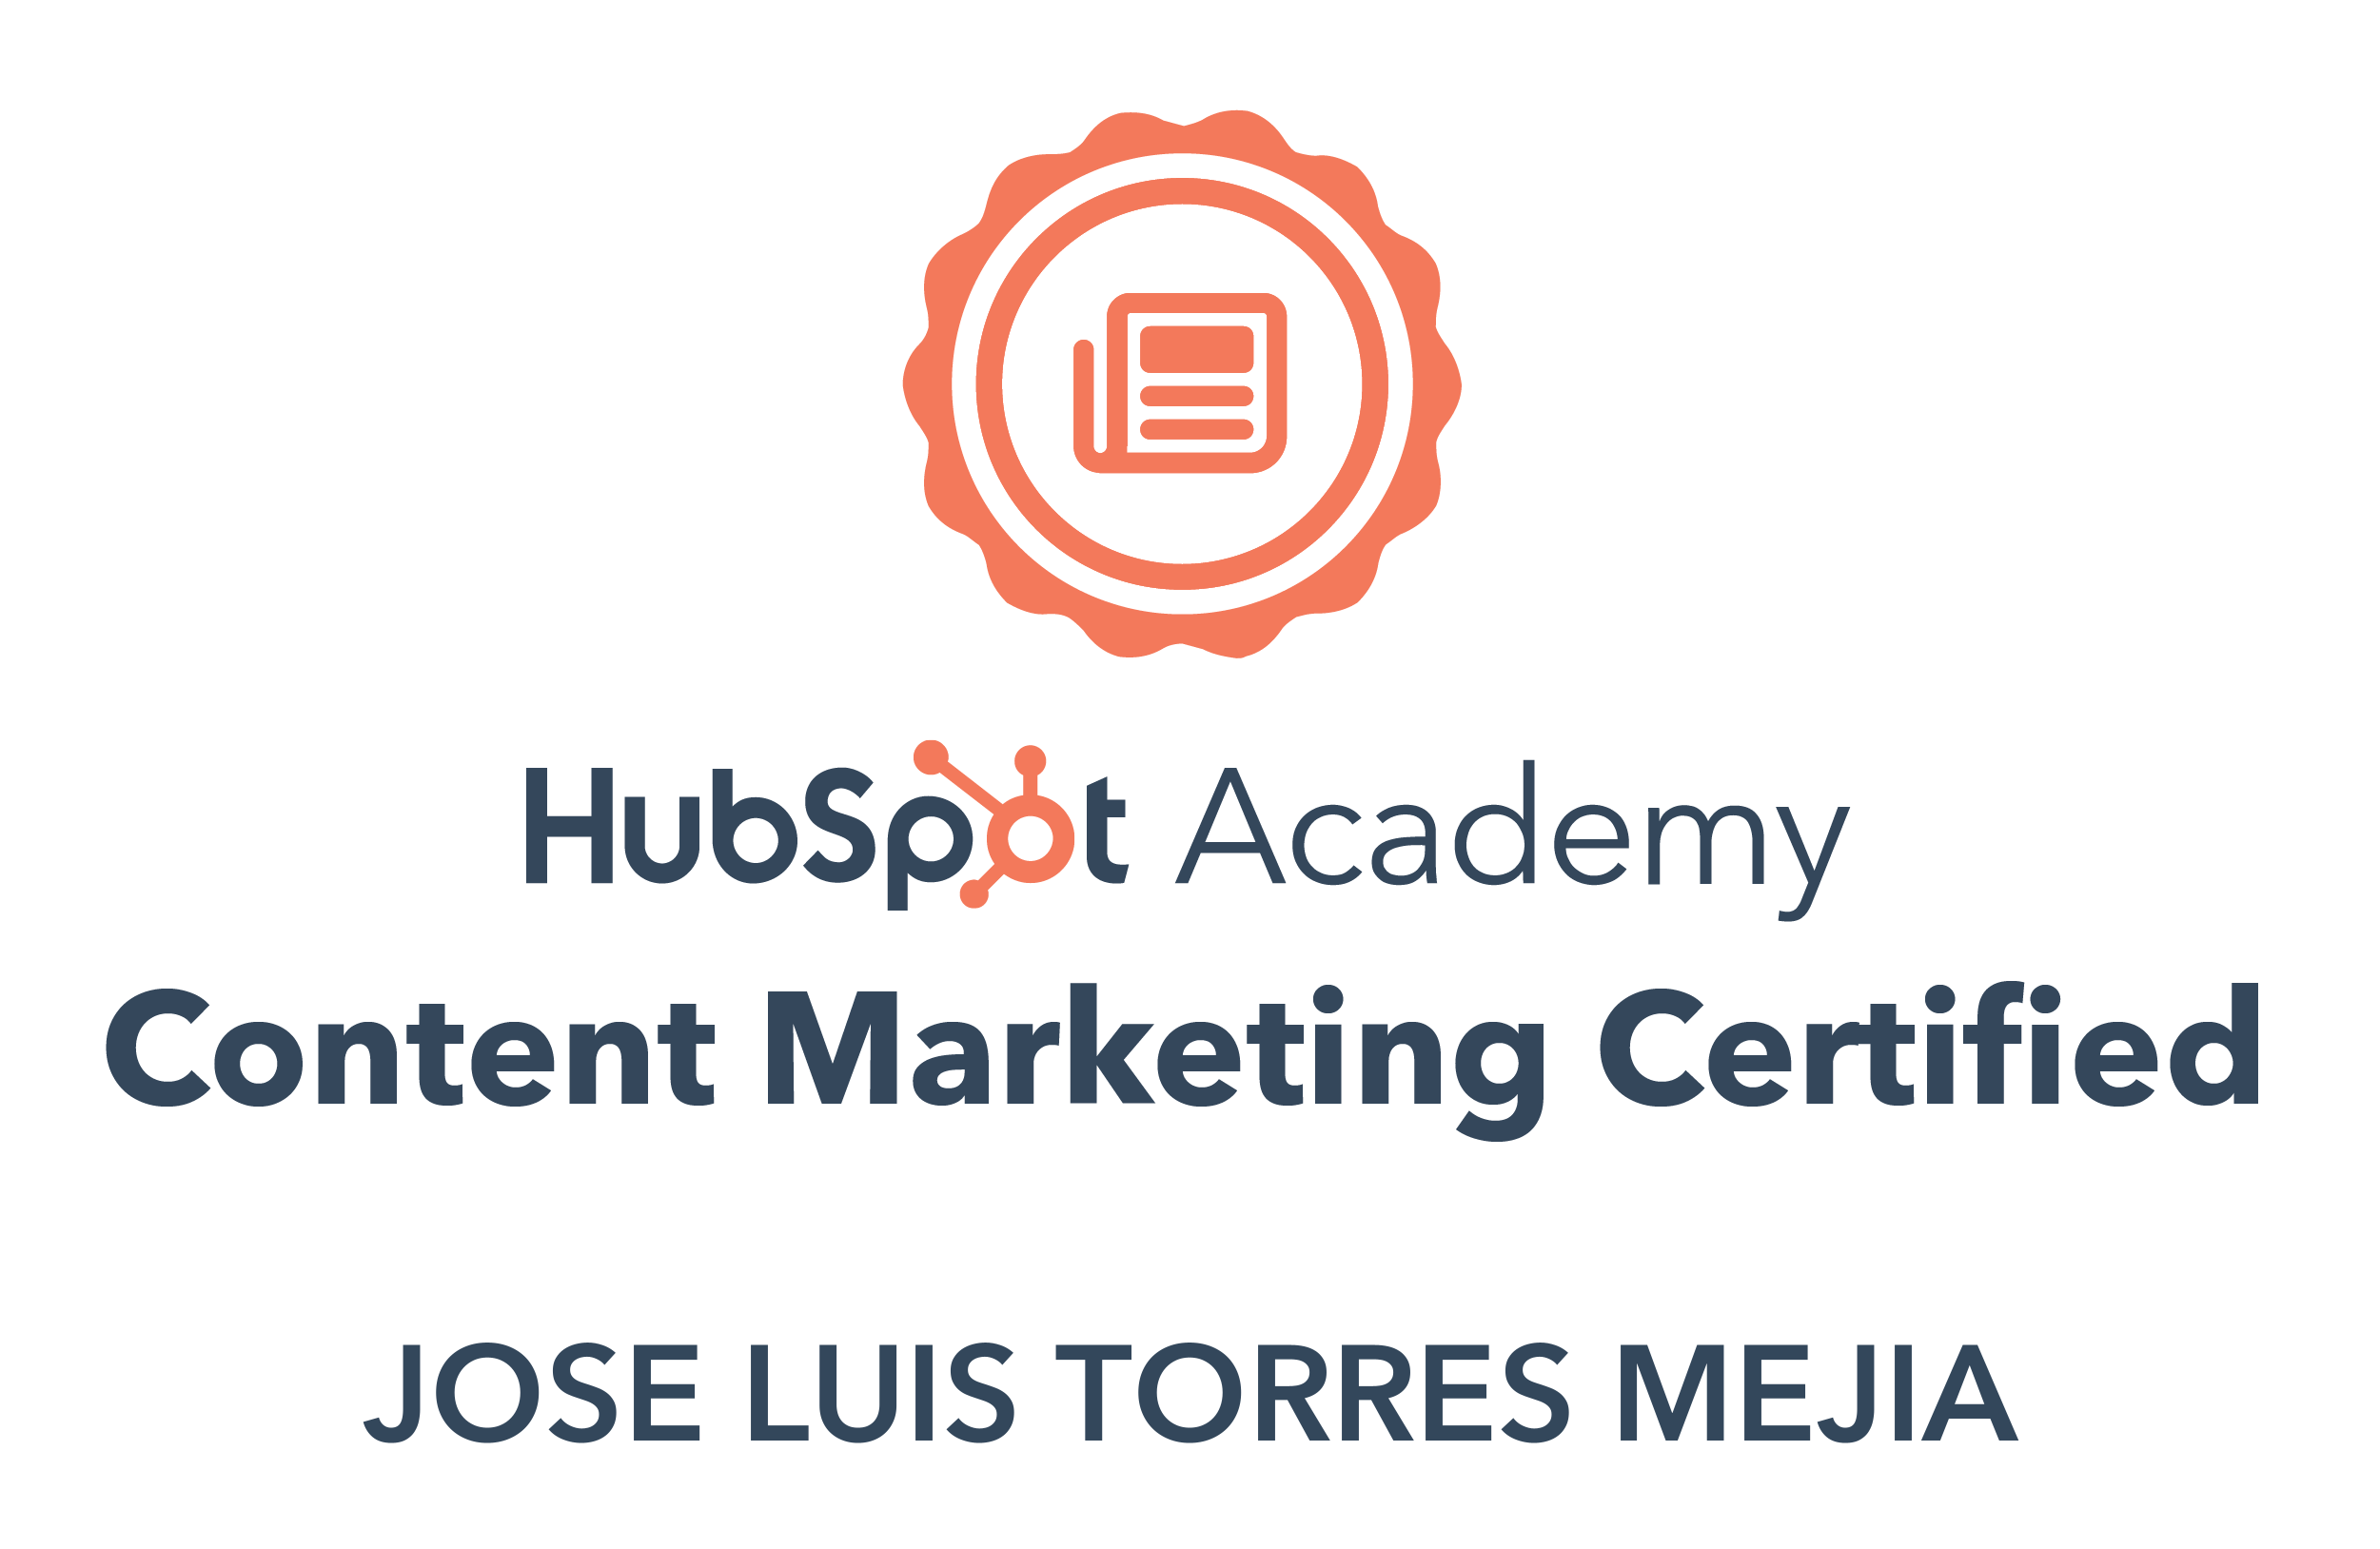 Jose Luis Torres Mejia  Content Marketing Certified